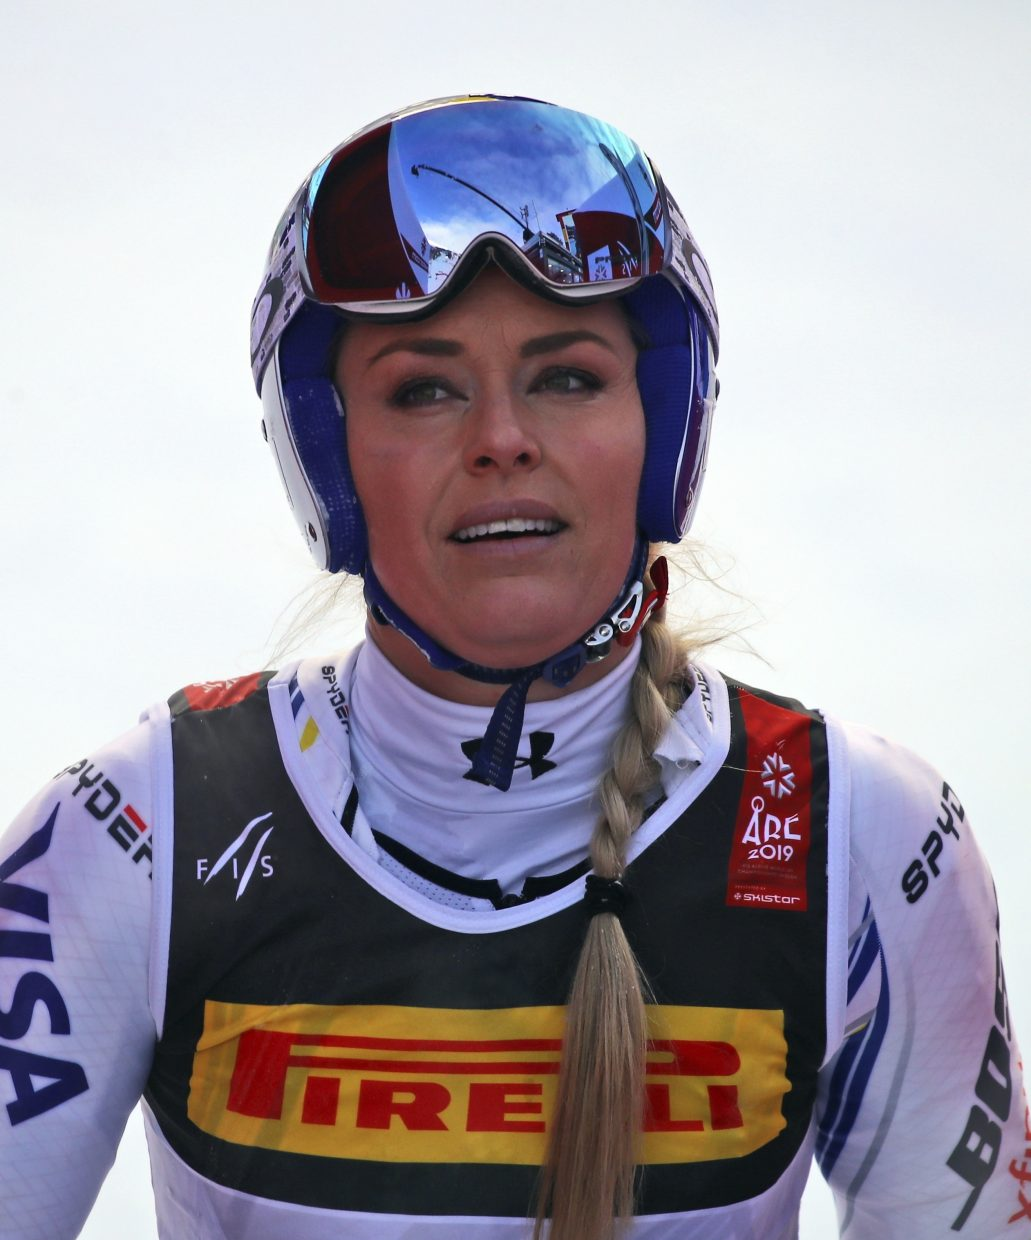 United States' Lindsey Vonn arrives at the finish area after crashing during the women's worlds super-G  in Are, Sweden, on Tuesday. Vonn said she will be able to compete in Sunday's downhill.